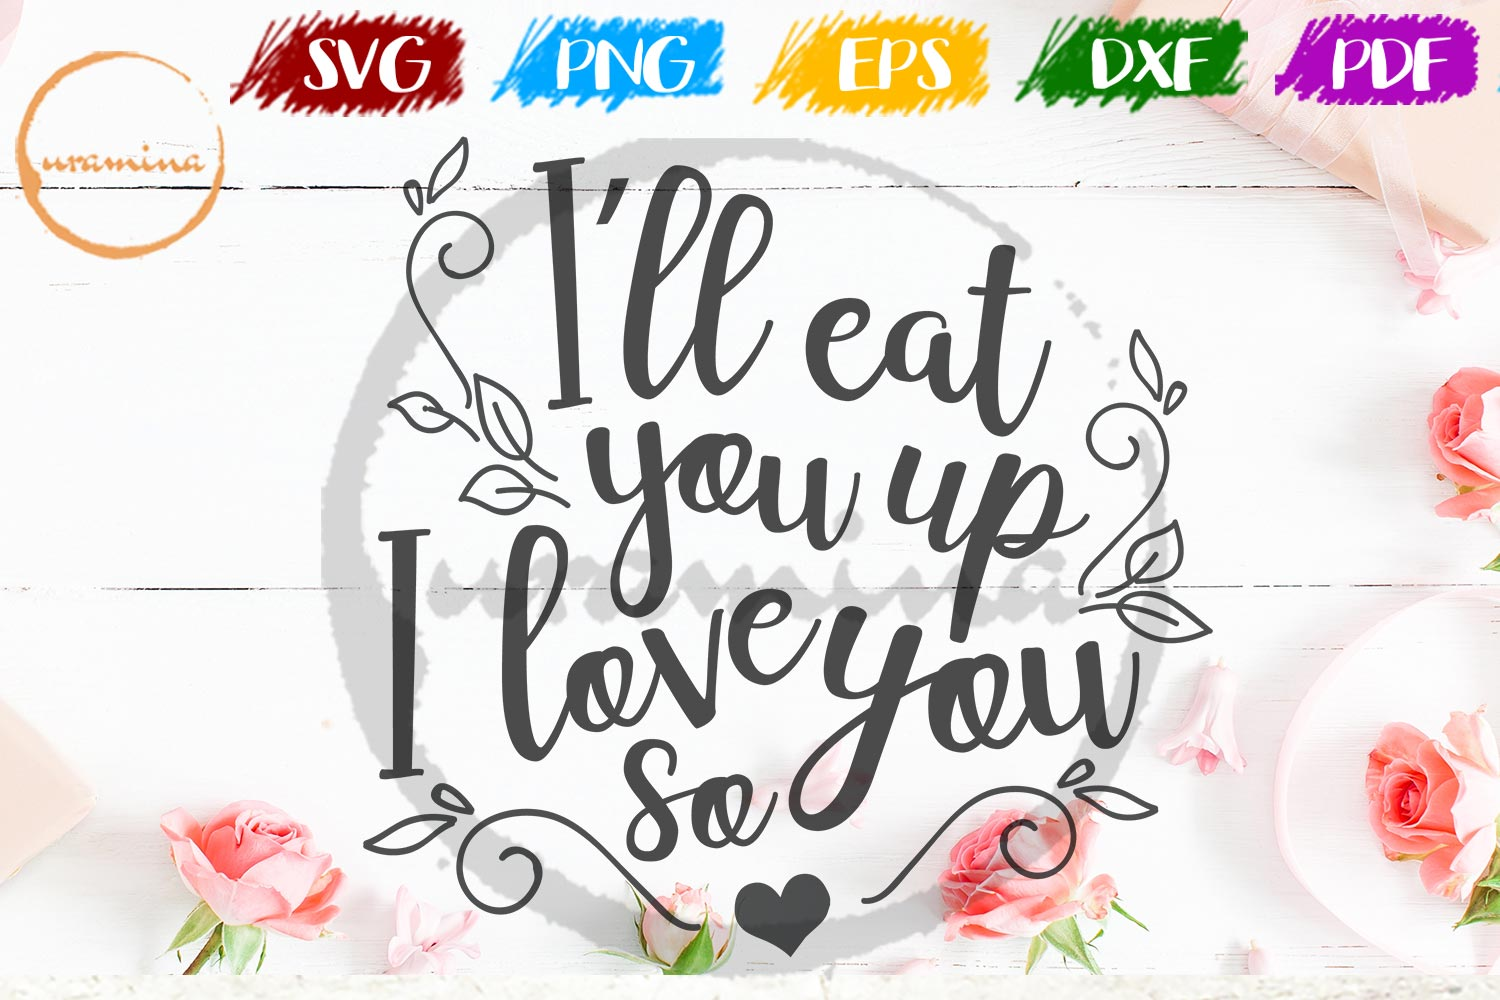 Download Free I Ll Eat You Up I Love You So Graphic By Uramina Creative Fabrica for Cricut Explore, Silhouette and other cutting machines.